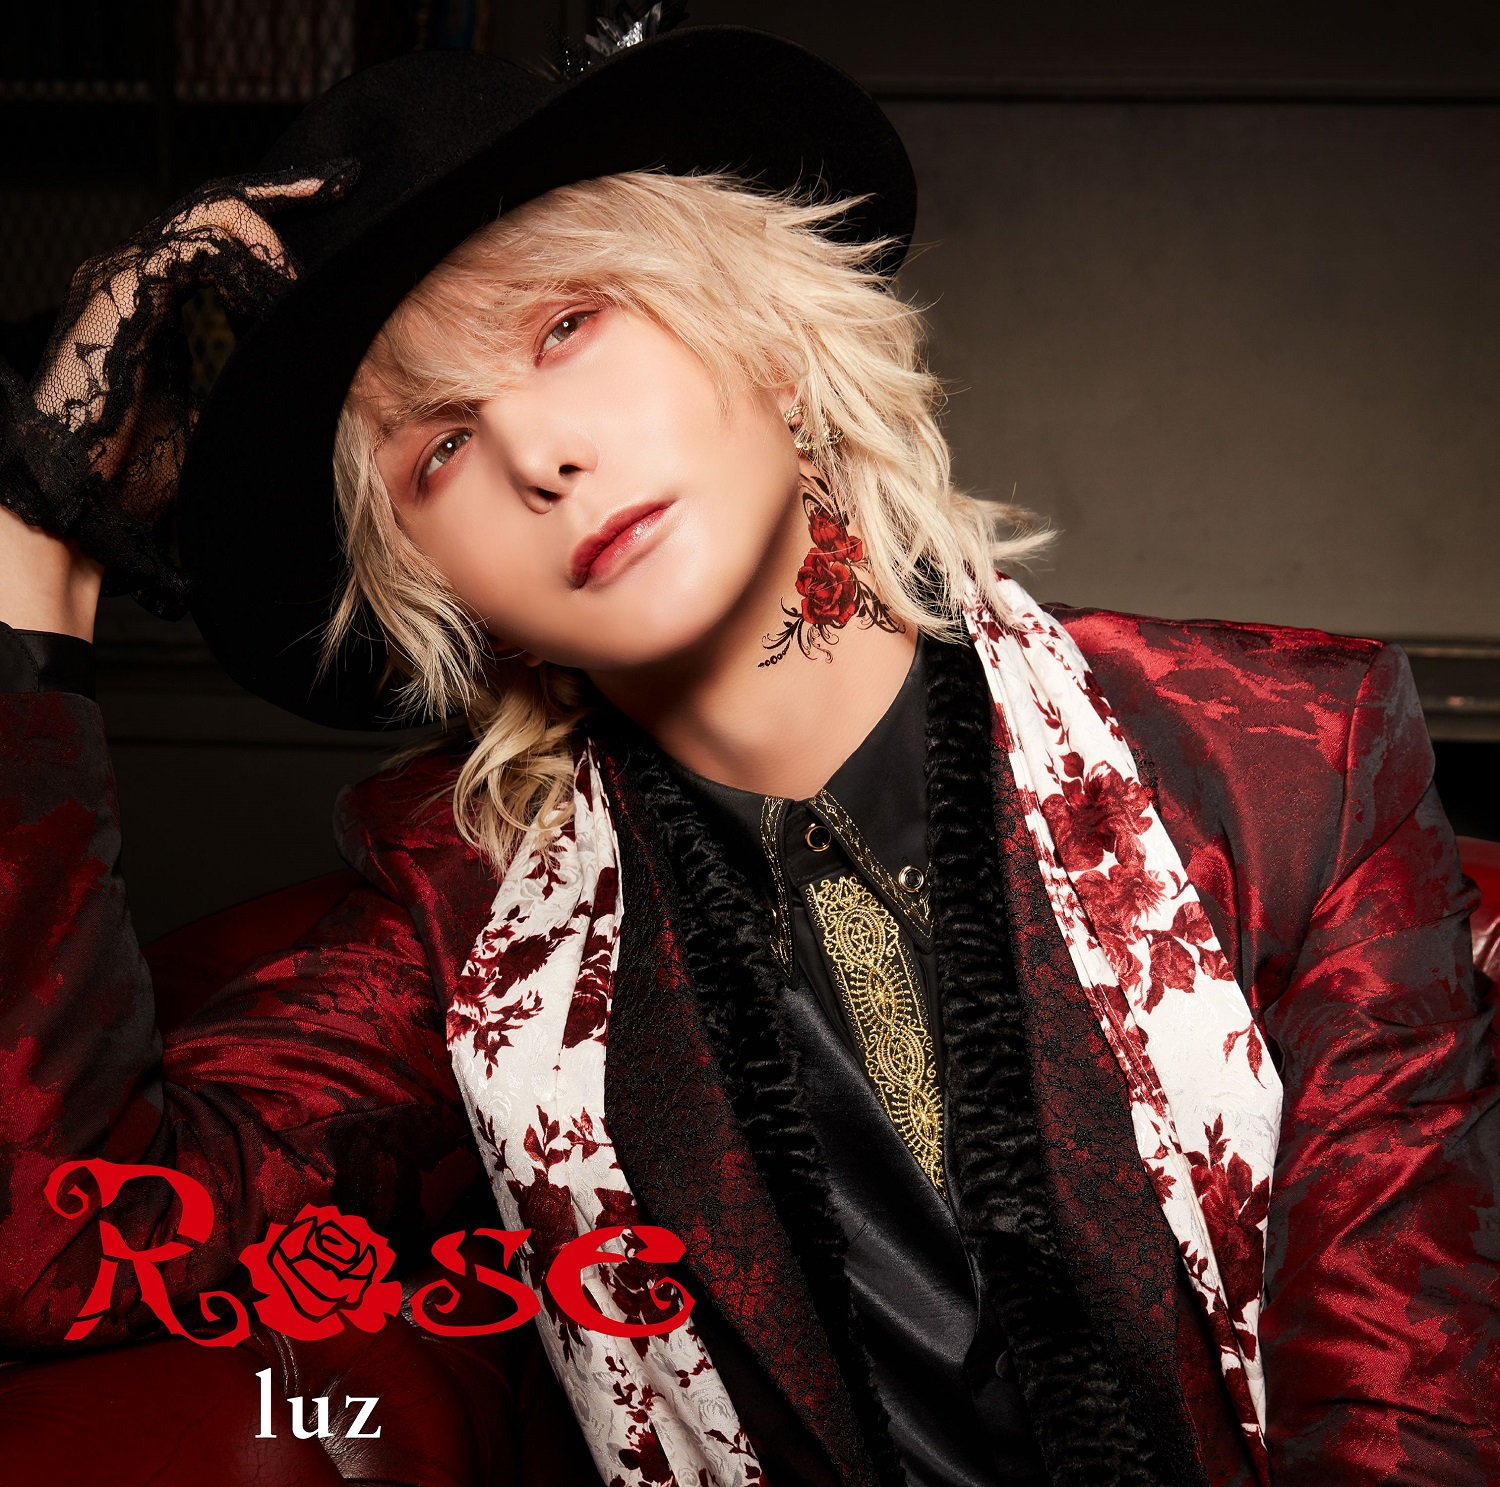 "luz 2nd single ""Rose"" XYZP Limited Edition(CD+DVD)Release in January 27th 2021"